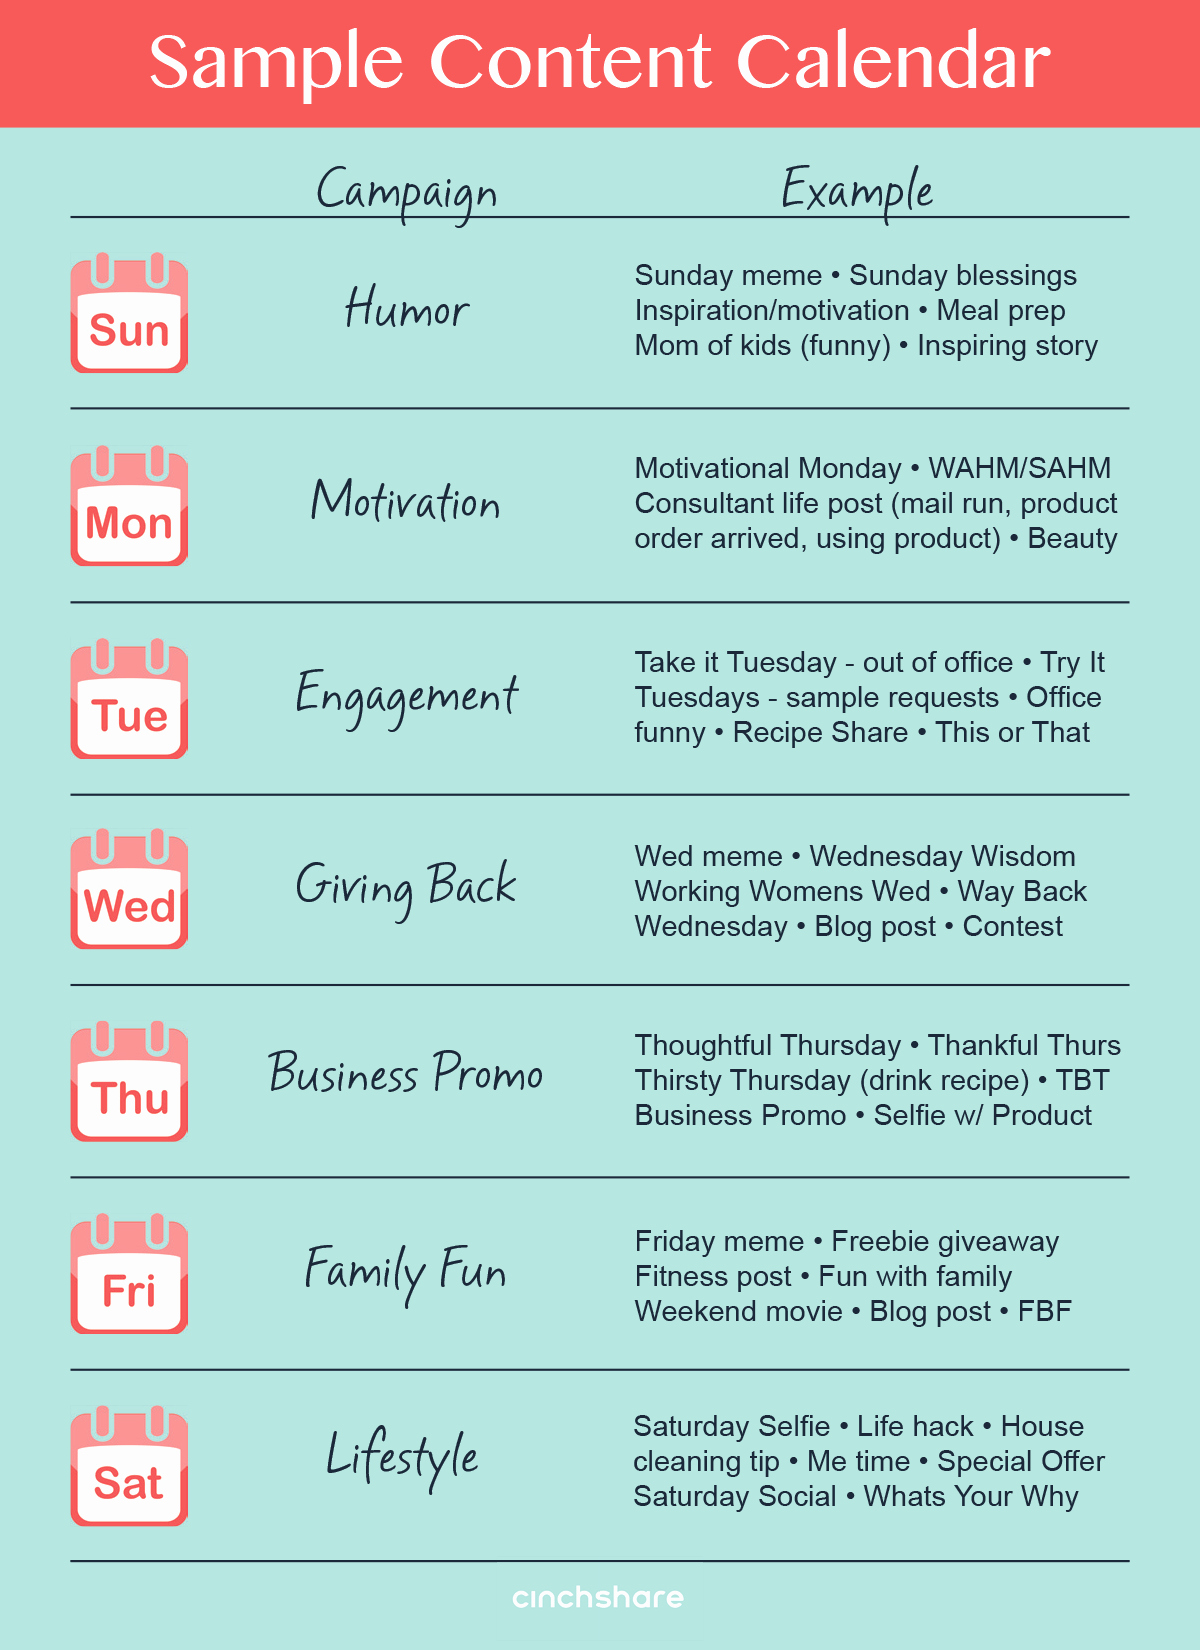 Social Media Posting Schedule Template Elegant Save Time and Reduce Stress with A Content Calendar